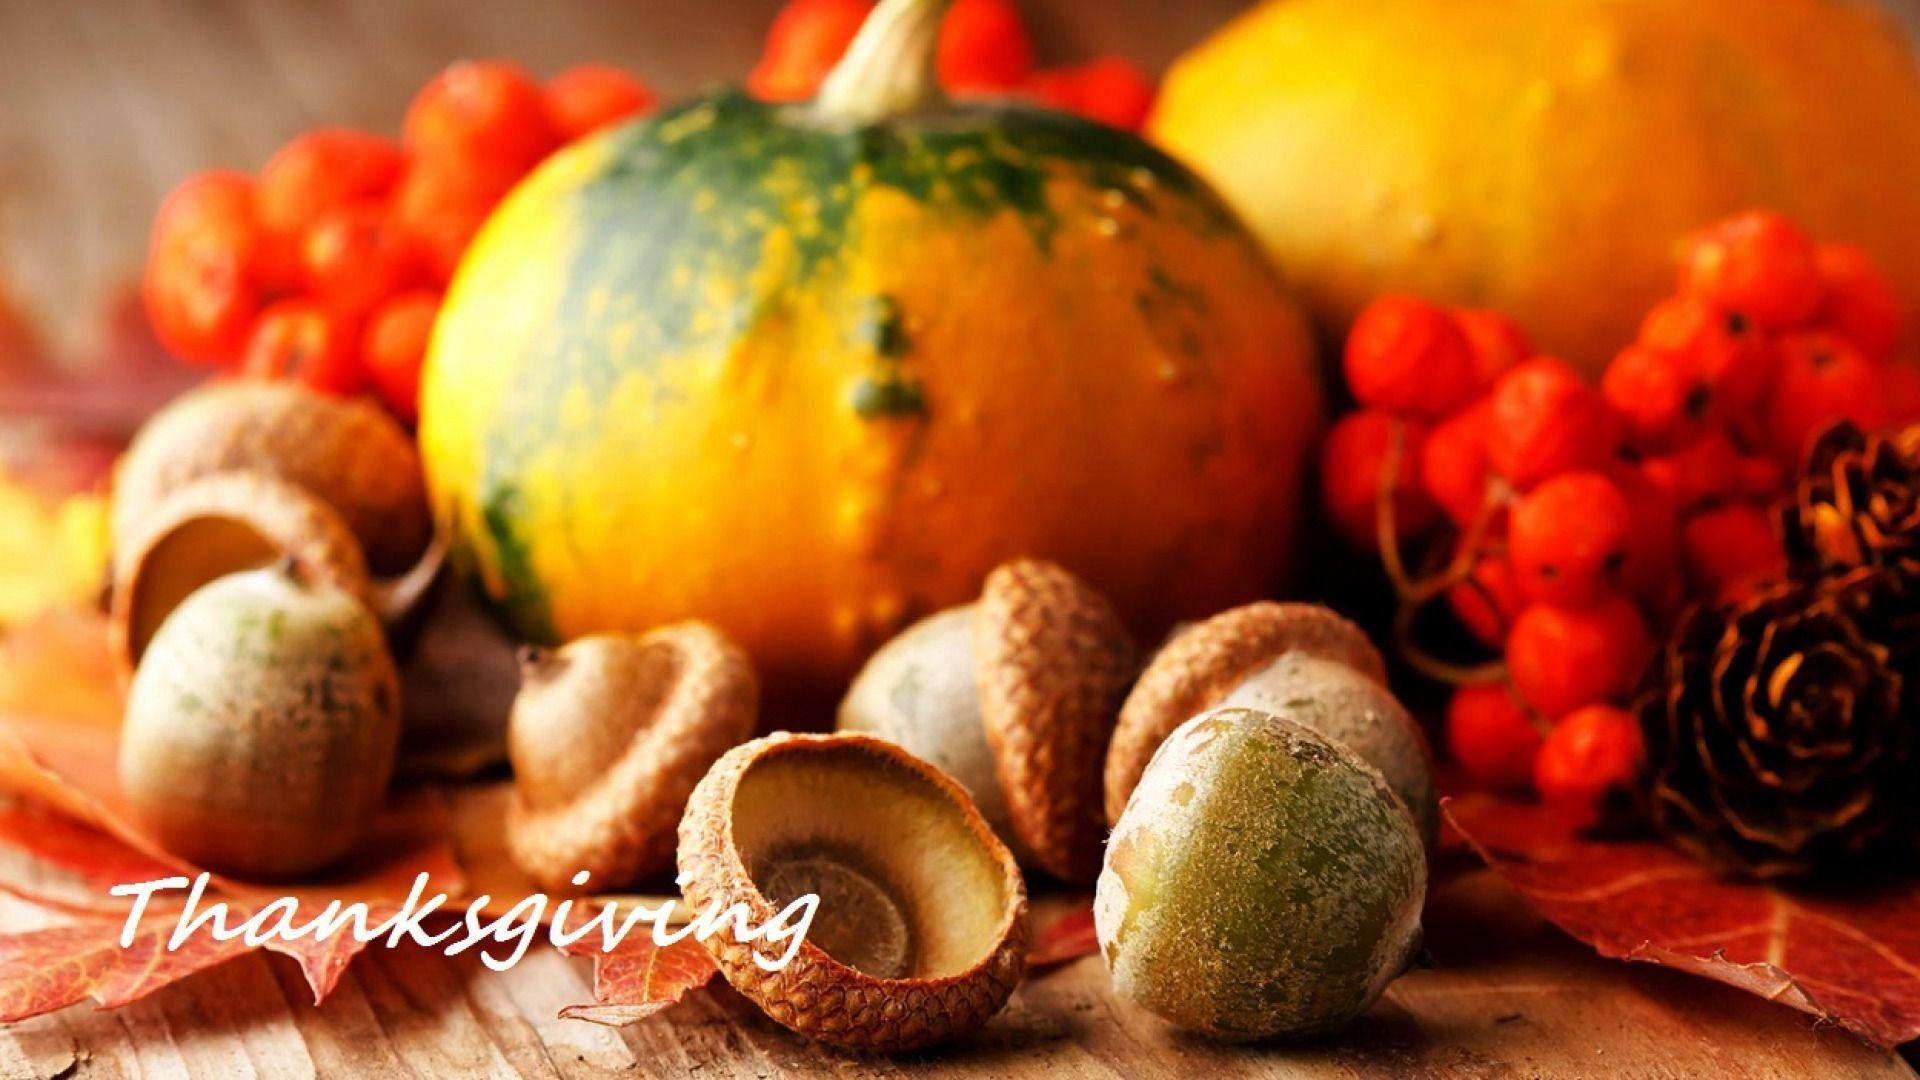 Wallpapers Thanksgiving ·①